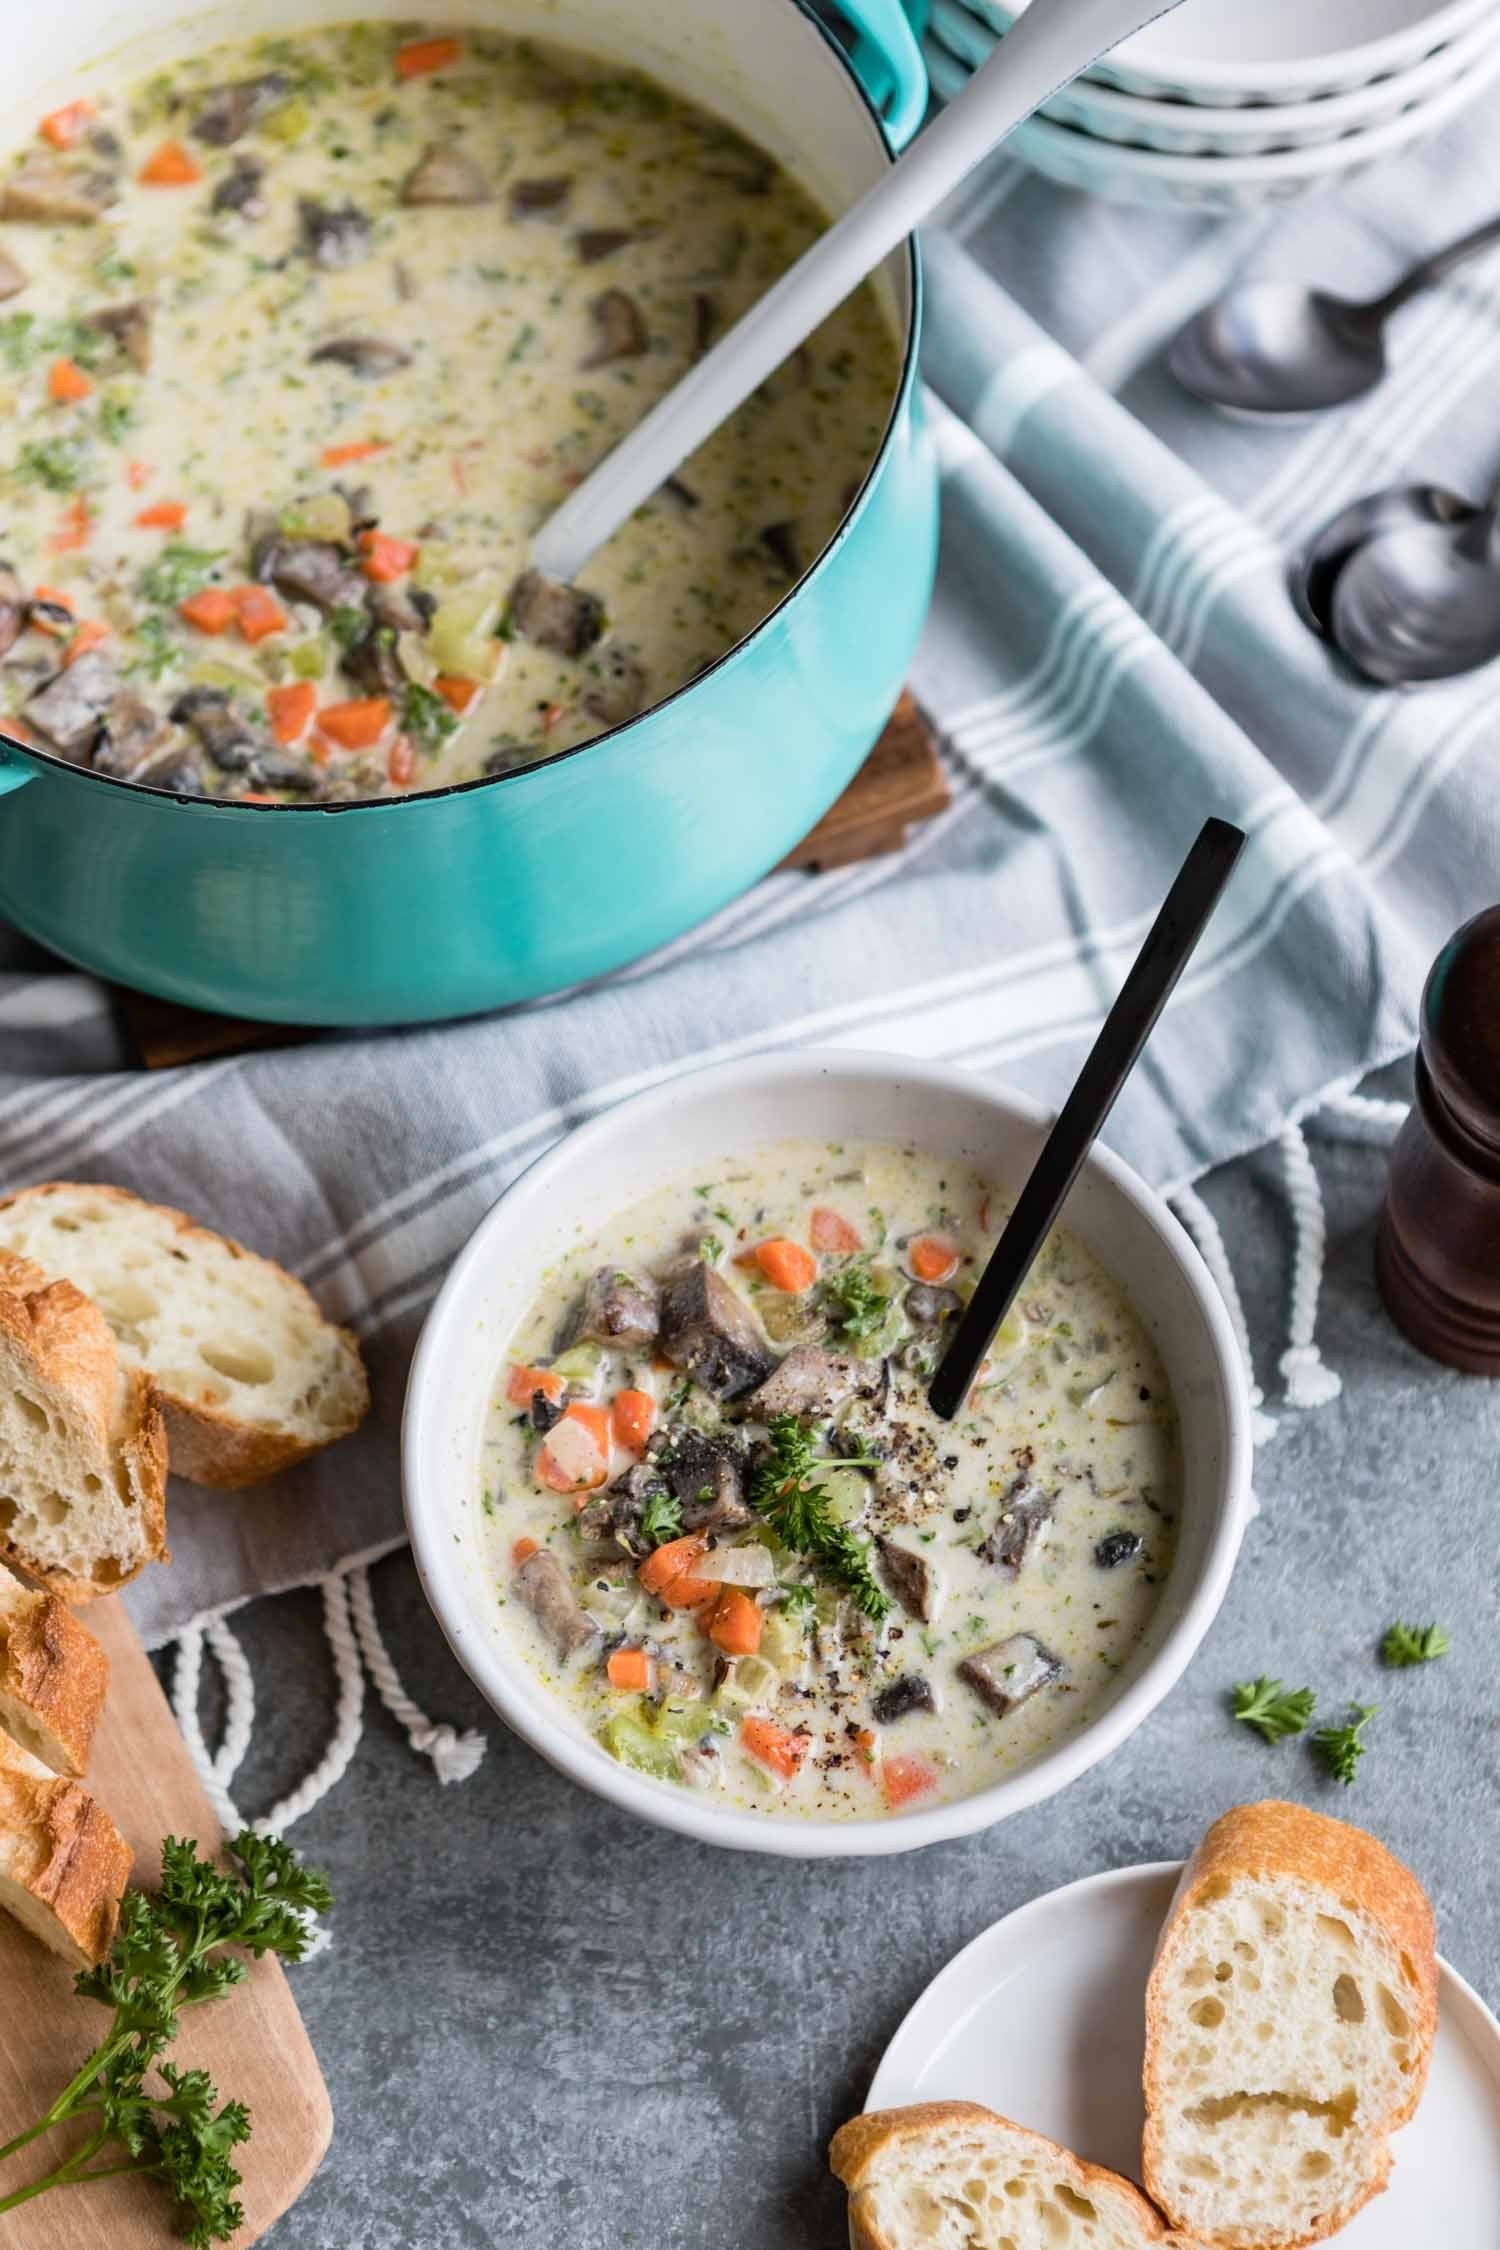 This gorgeous soup is hearty enough to be the star of your next fall potluck. Hot tip: Sprinkle some freshly grated smoked Gouda on top to really take it to the next level. Get the recipe here.